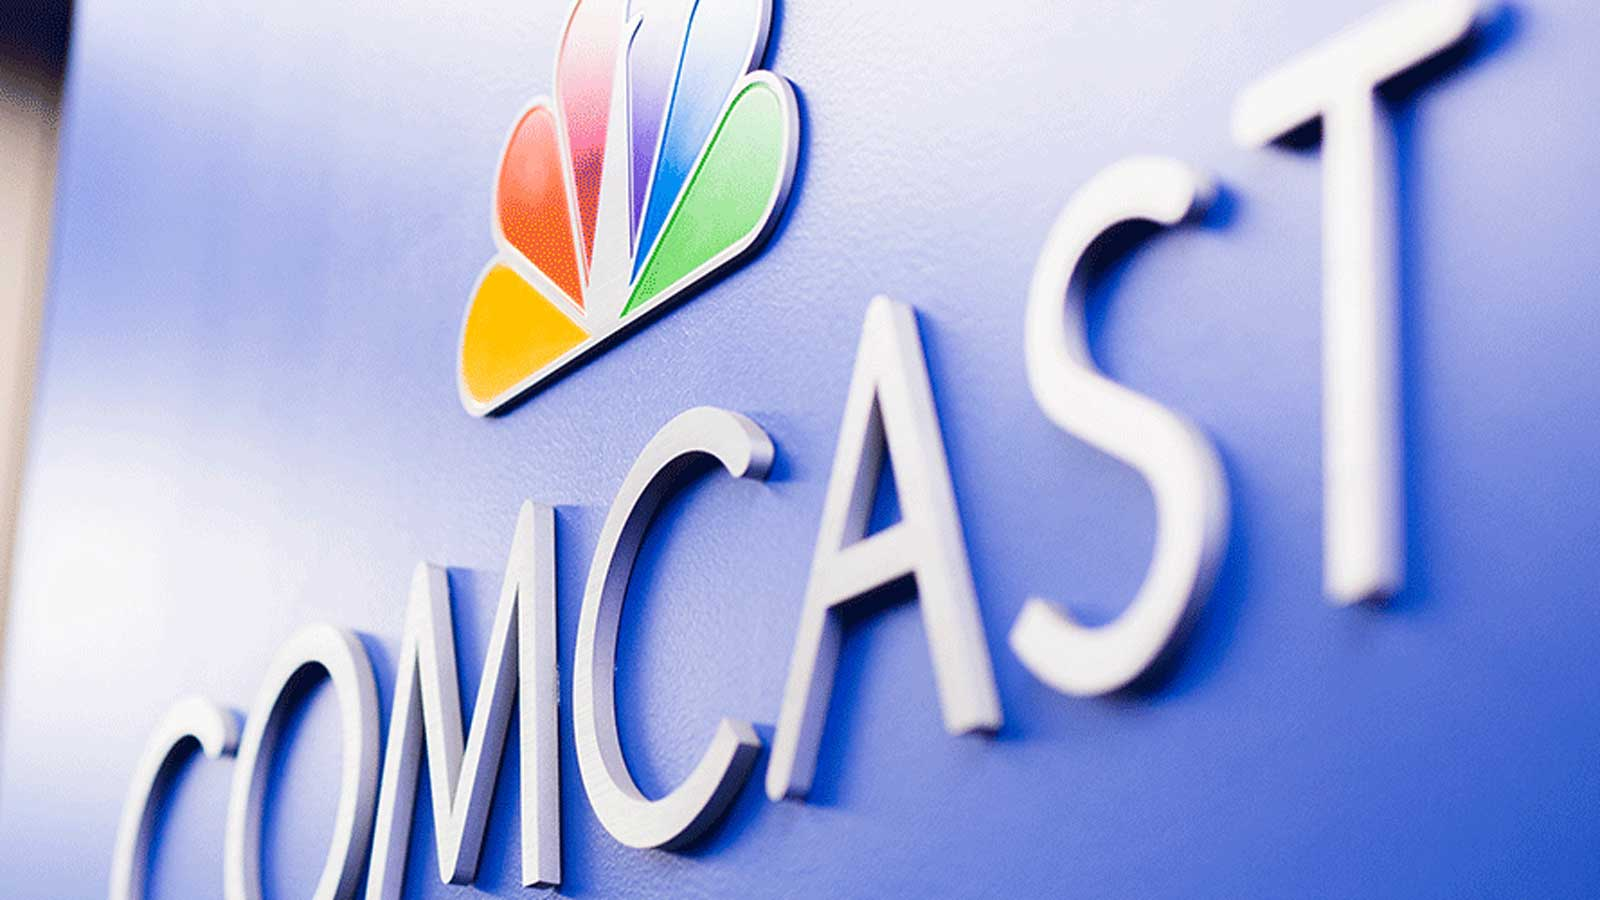 Comcast signage on wall